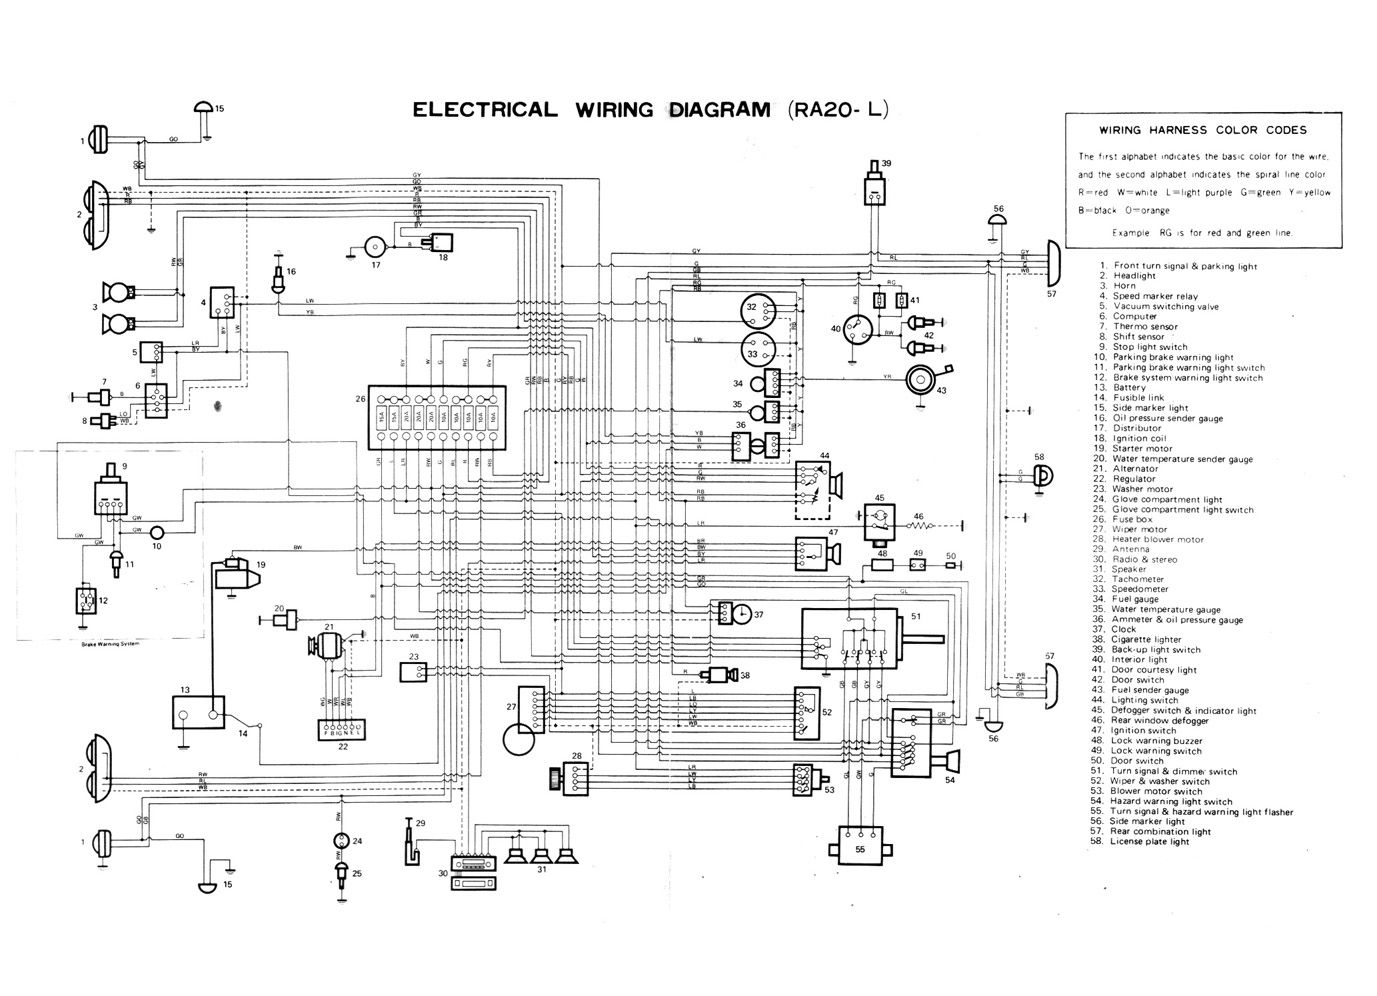 Grafik International 9200i Wiring Diagram Hd Version Grafikftp Acbat Maconnerie Fr